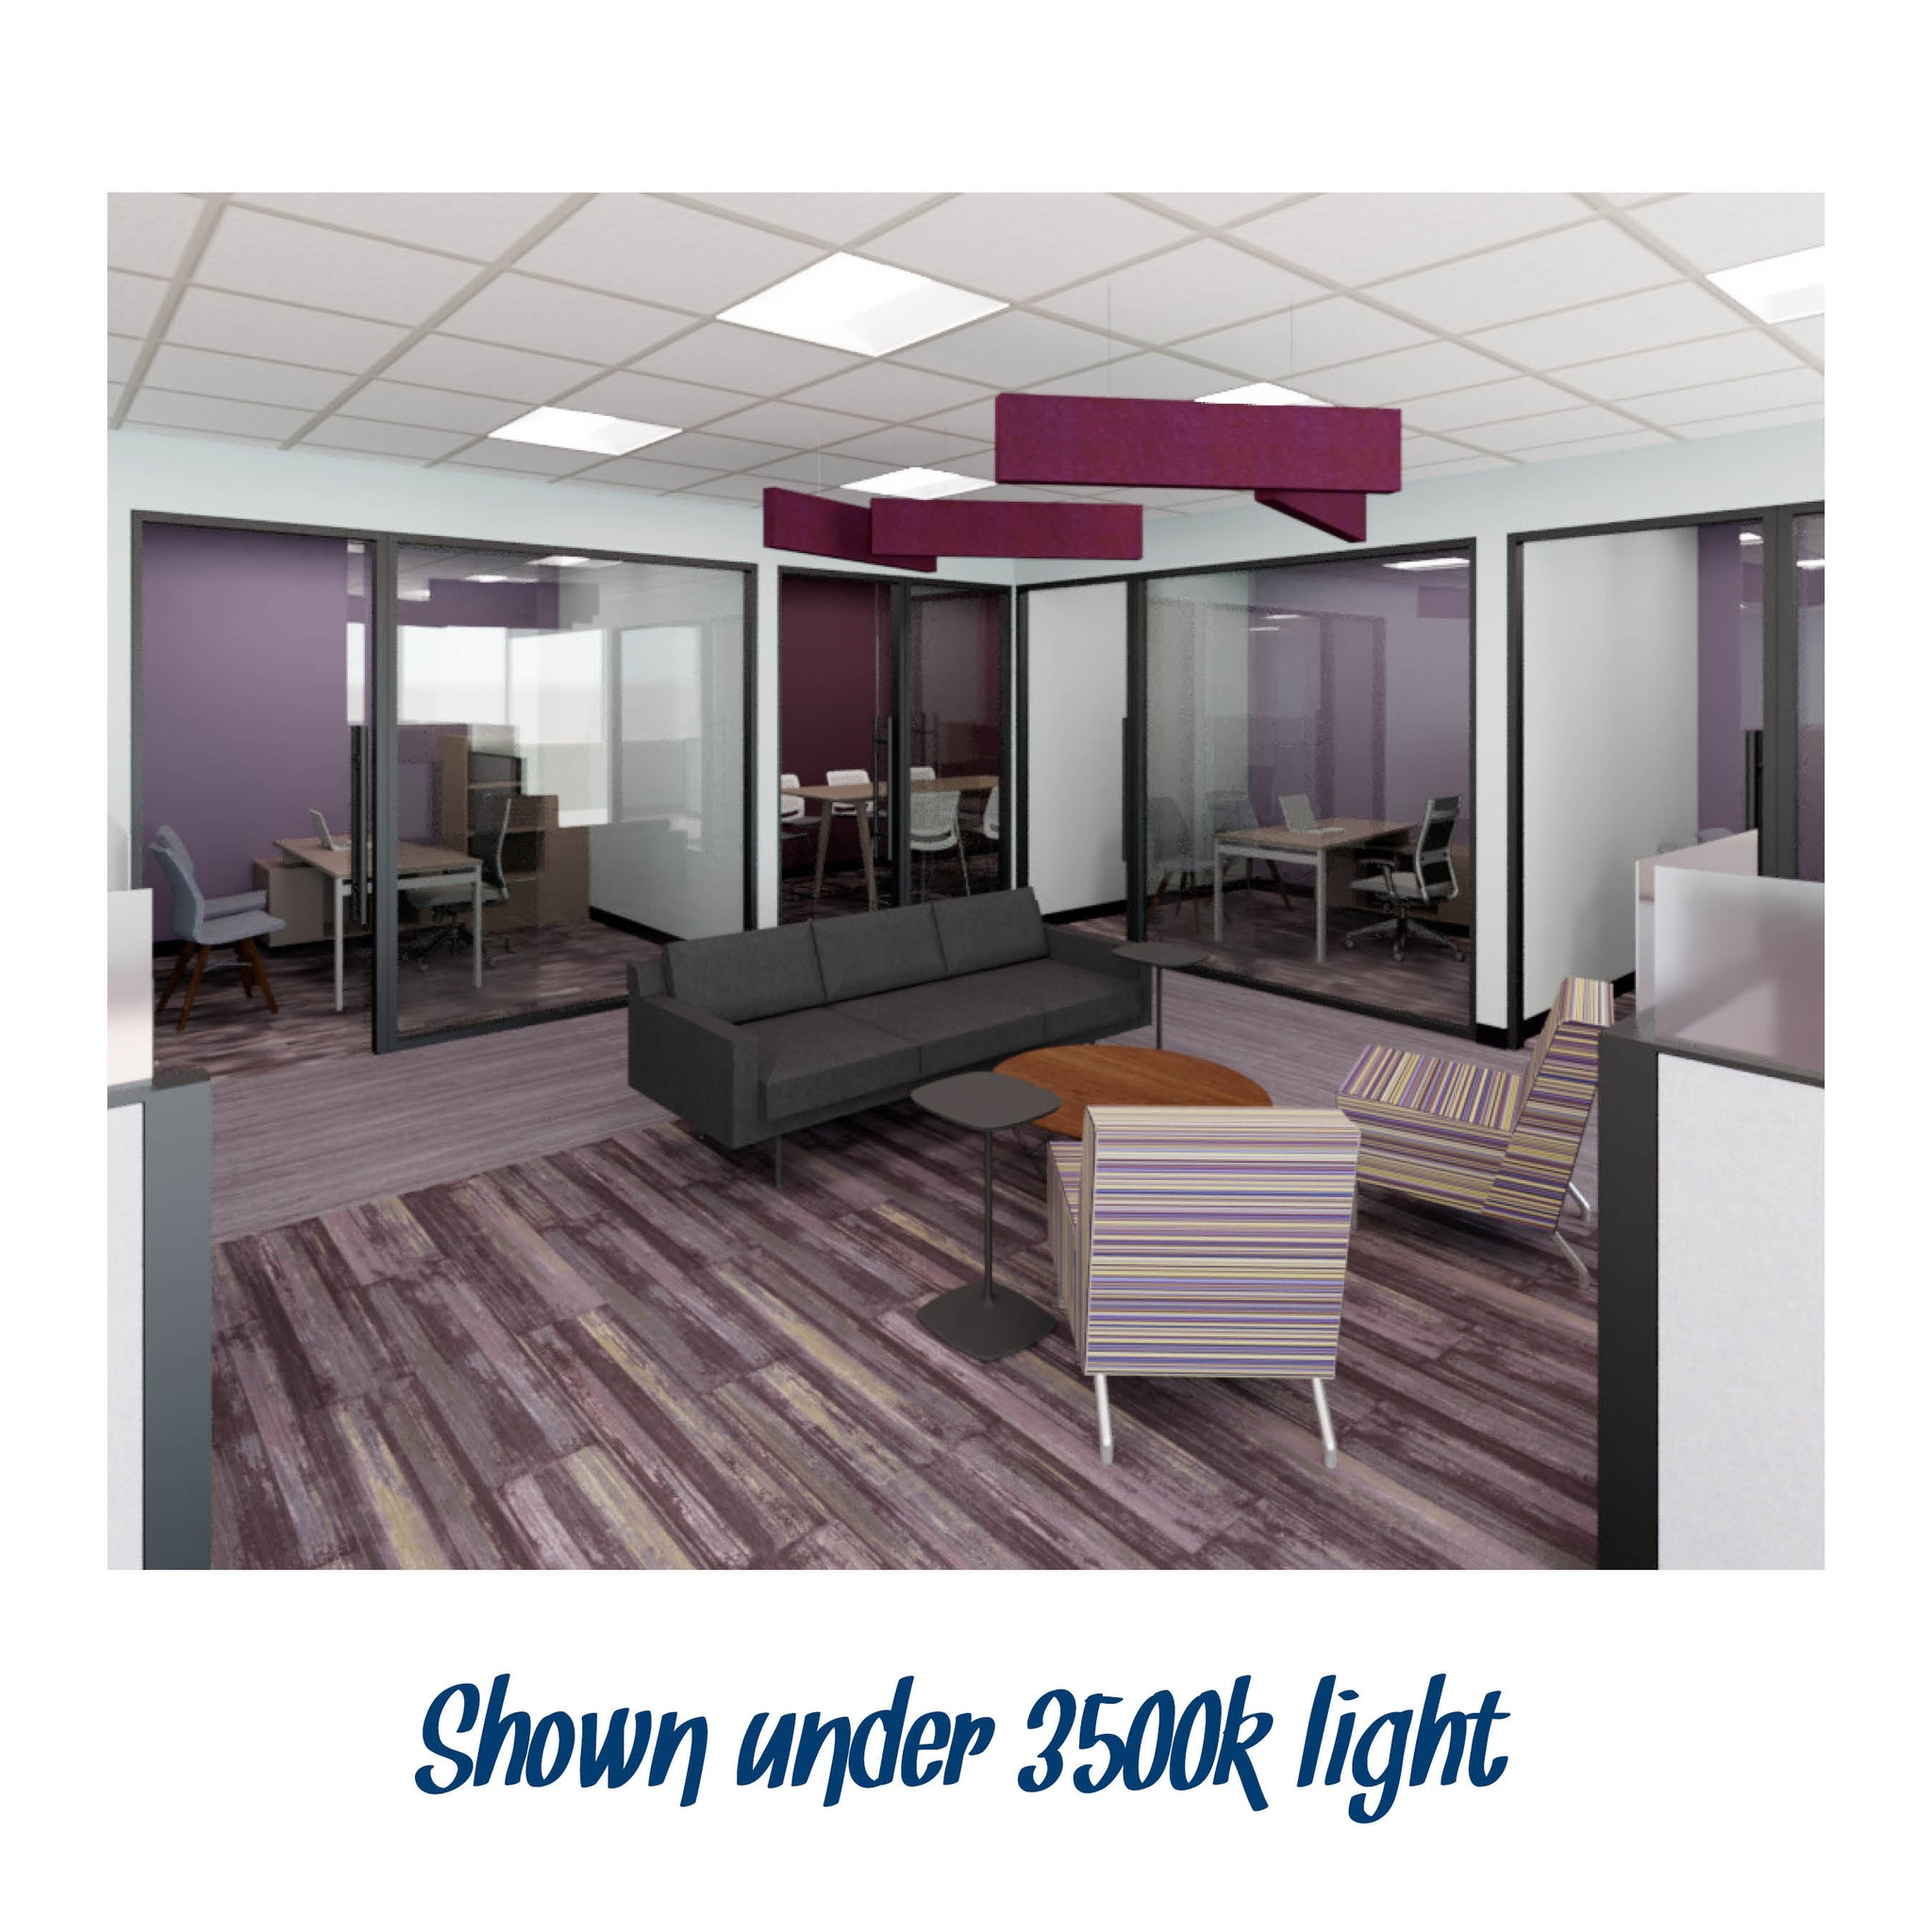 Cool purple, yellow, and gray commercial office rendering